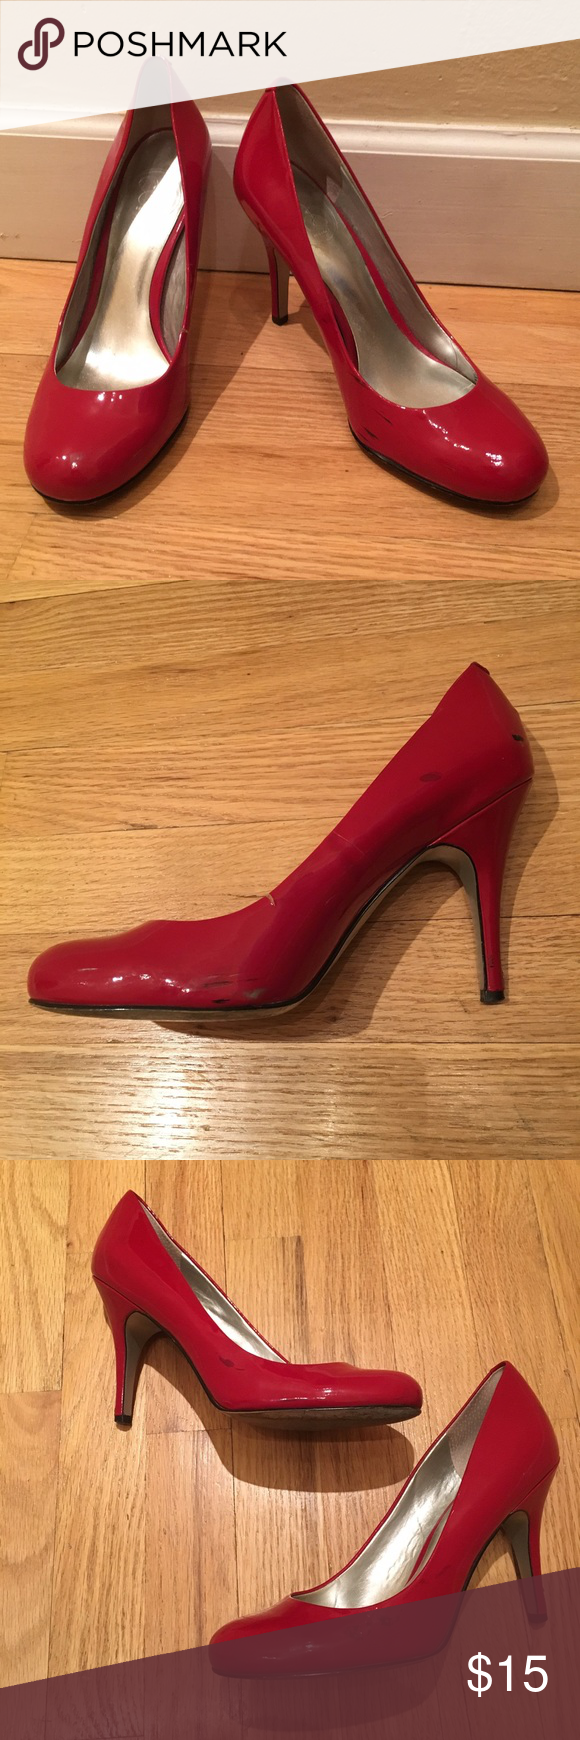 """Jessica Simpson red heels Red pumps. Heel height is 4"""". There is a small tear on one shoe and both have black marks throughout from wear. Some wear on heels as well. Price reflects damage. Offers welcome! Jessica Simpson Shoes Heels"""